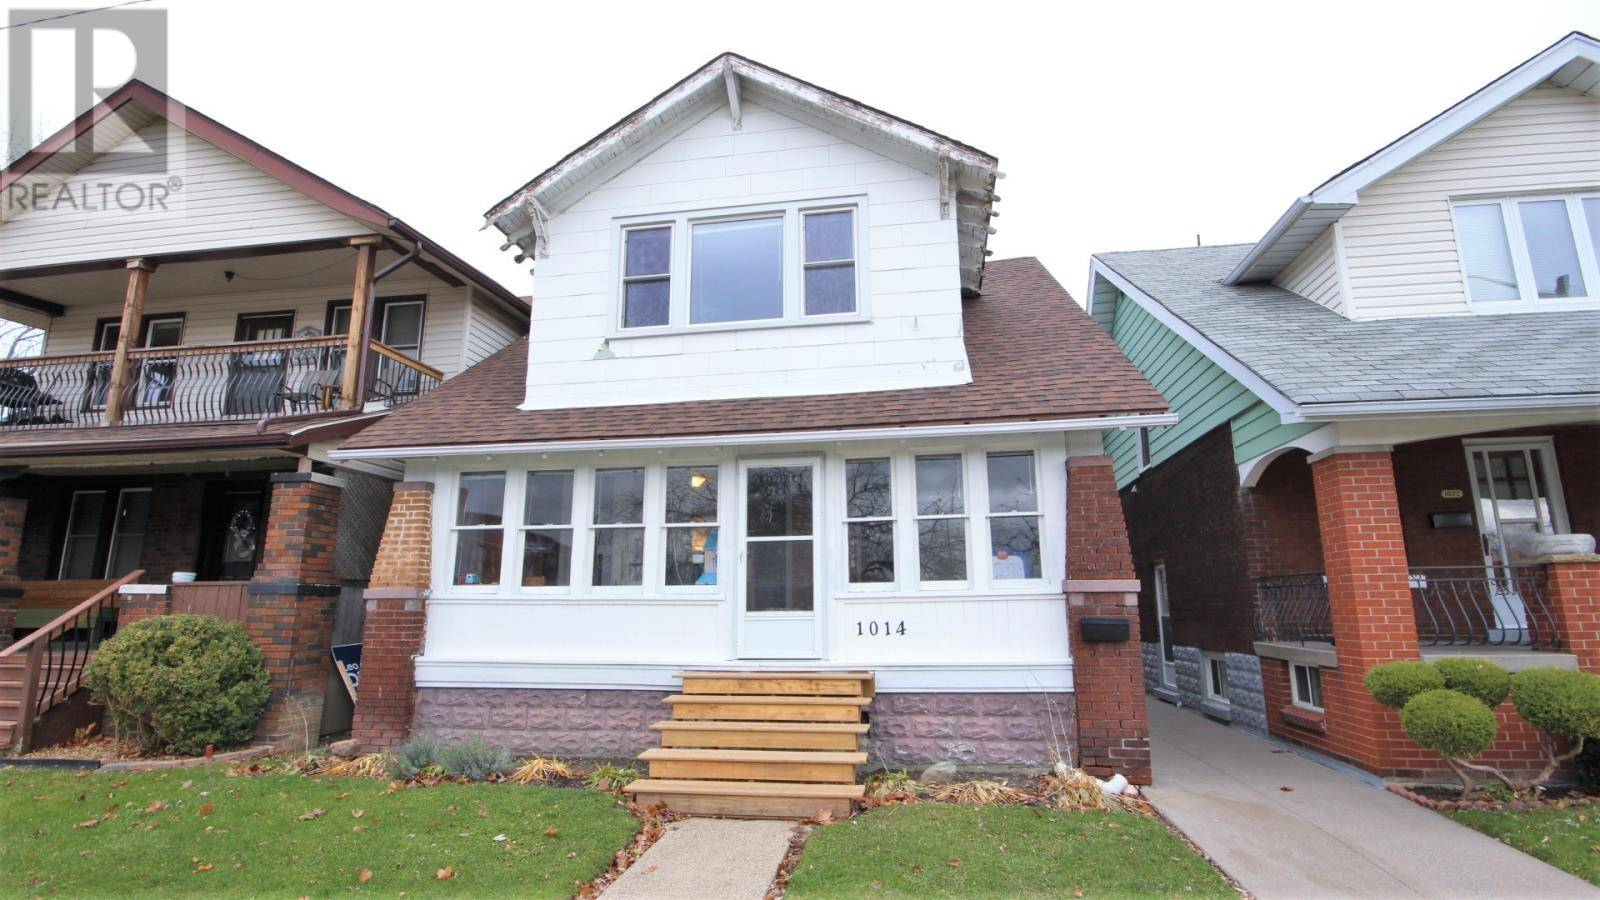 House for sale at 1014 Giles Blvd East Windsor Ontario - MLS: 19028868